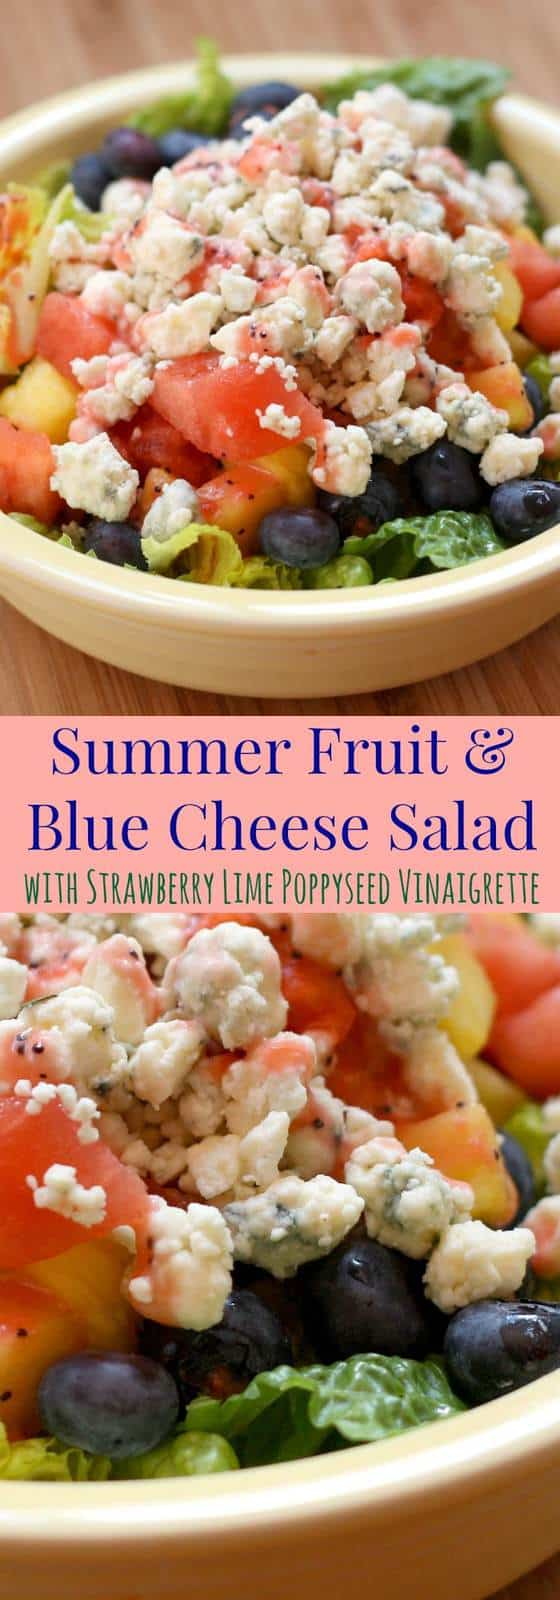 Summer Fruit and Blue Cheese Salad with Strawberry Lime Poppy Seed Vinaigrette - a summer salad with a perfect sweet and savory combo for a light lunch or meatless dinner. | cupcakesandkalechips.com | gluten free, vegetarian